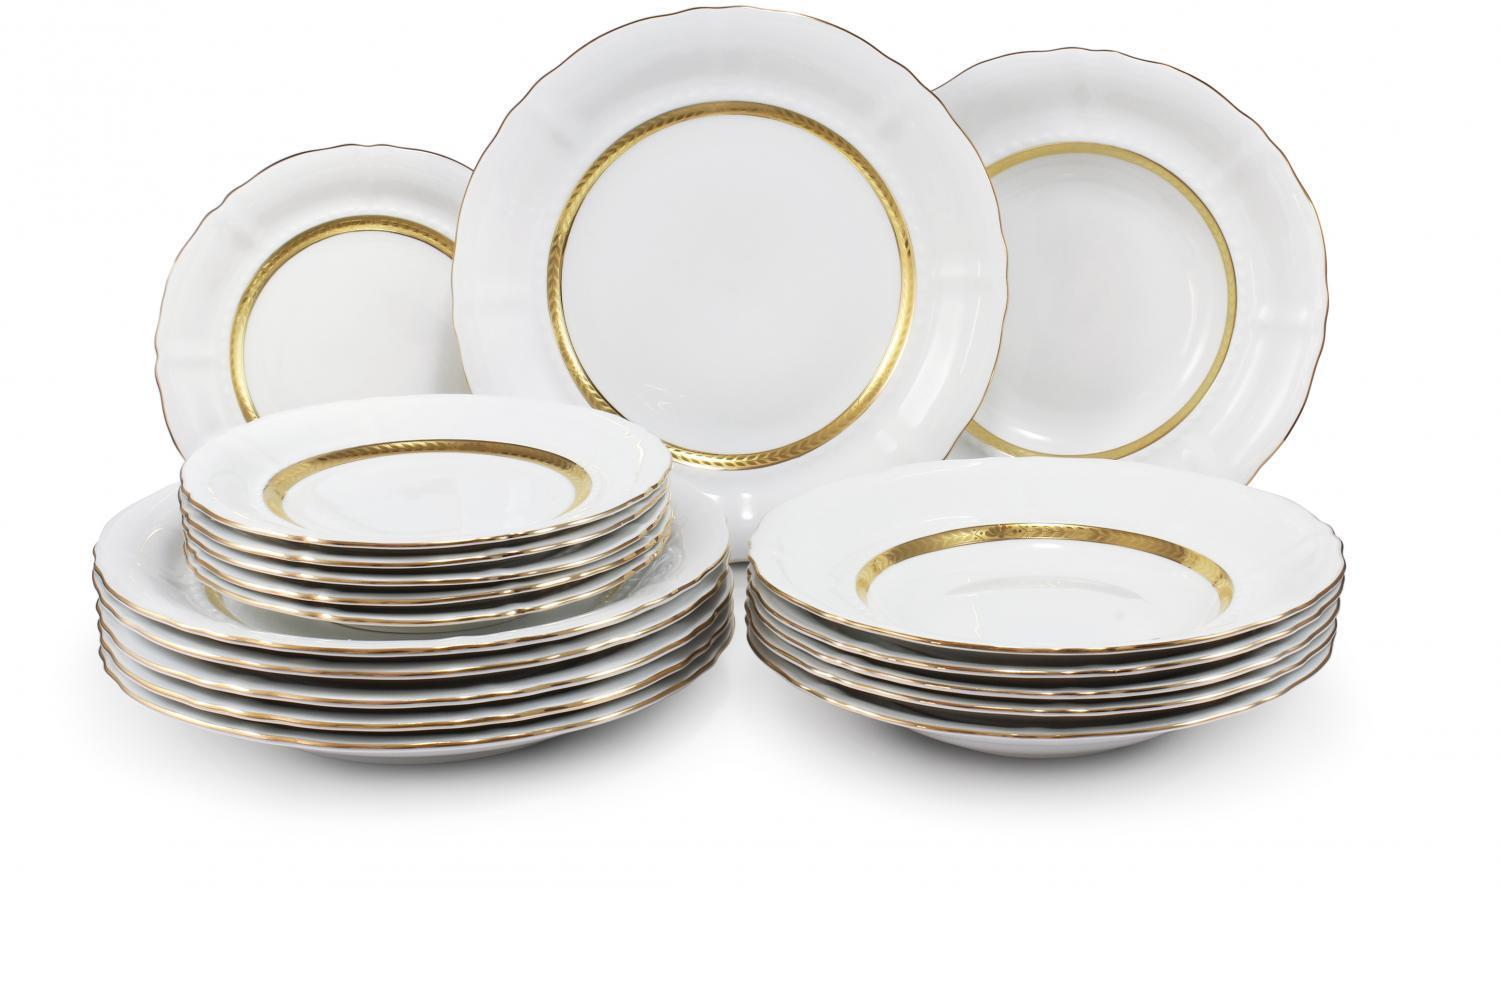 Plate set 18-piece - Gold braid